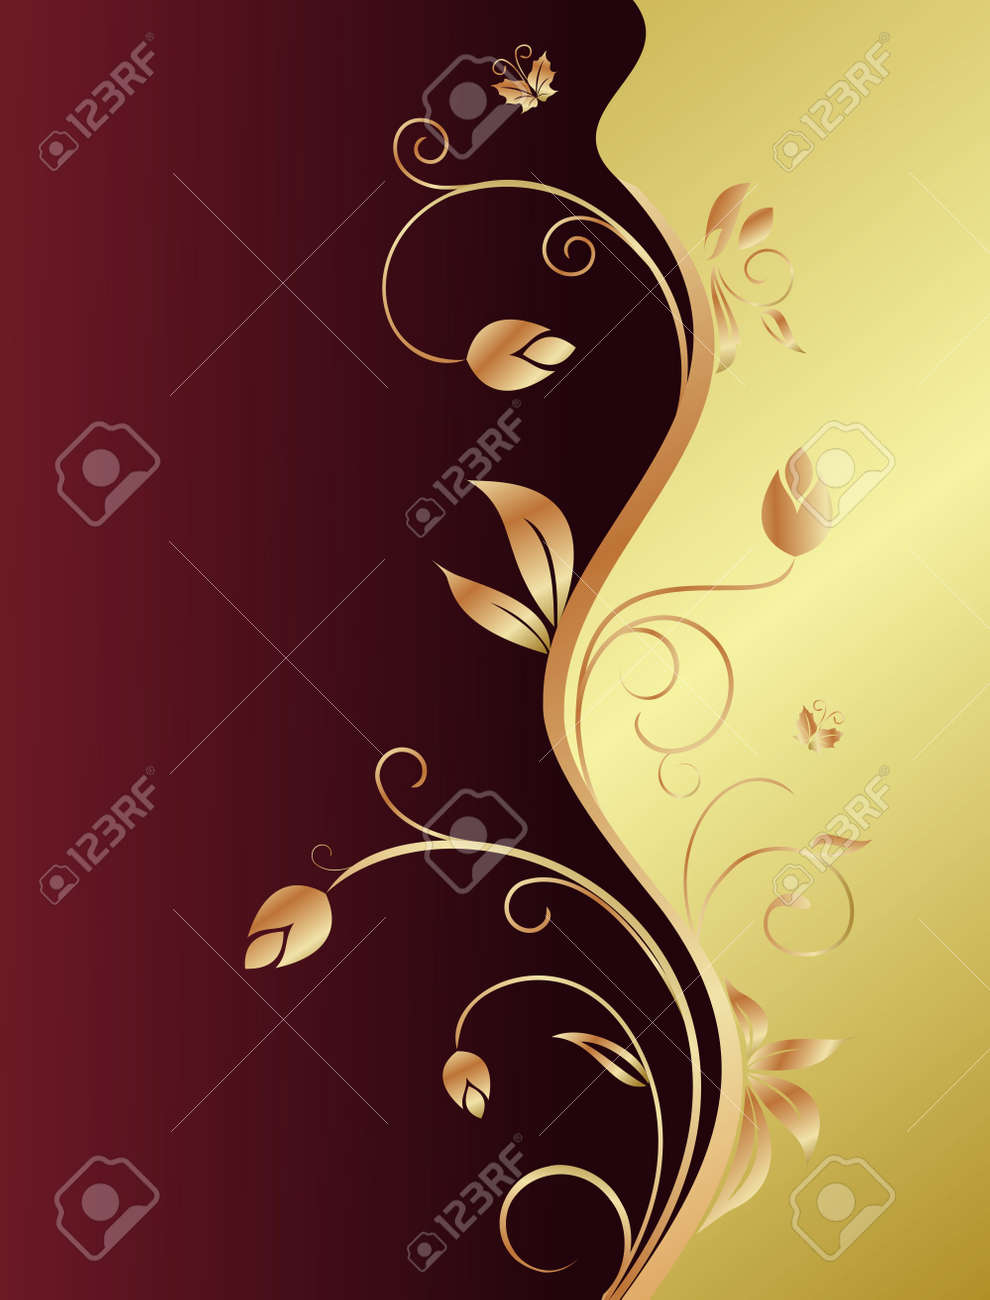 Floral background for design holiday card Stock Vector - 7589694